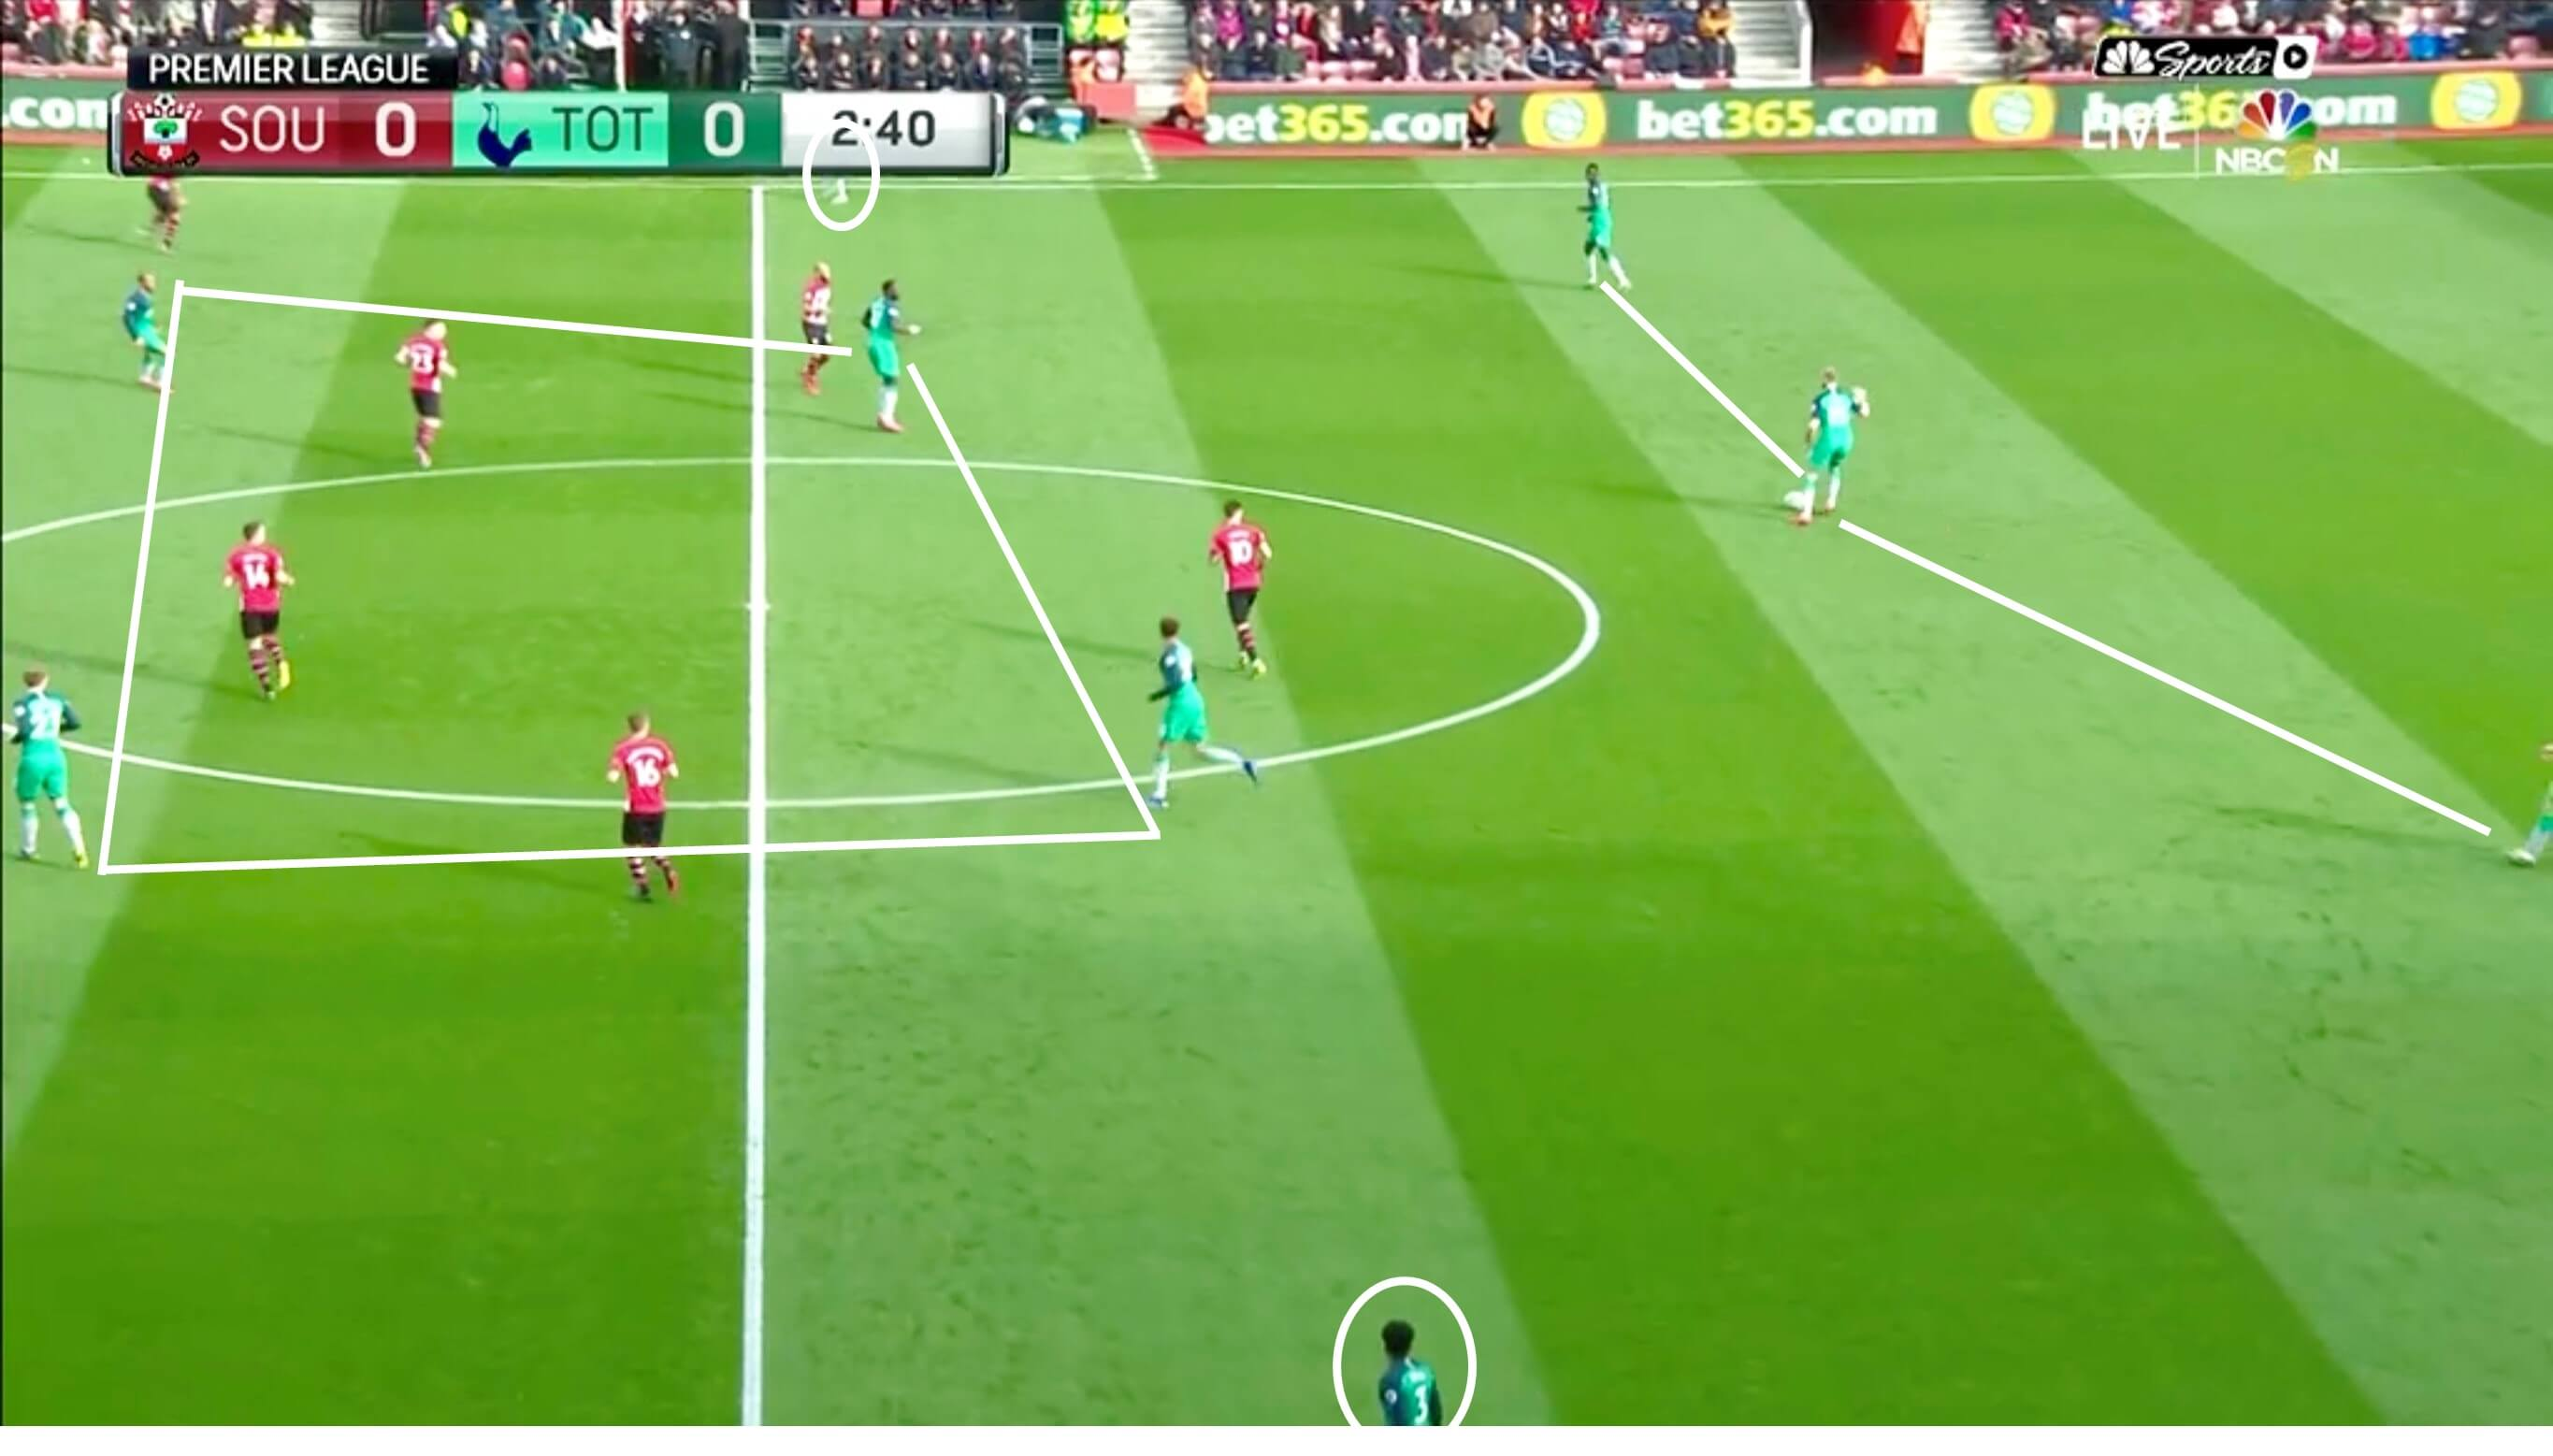 Southampton vs Tottenham Premier League 2018/19 Tactical Analysis Statistics